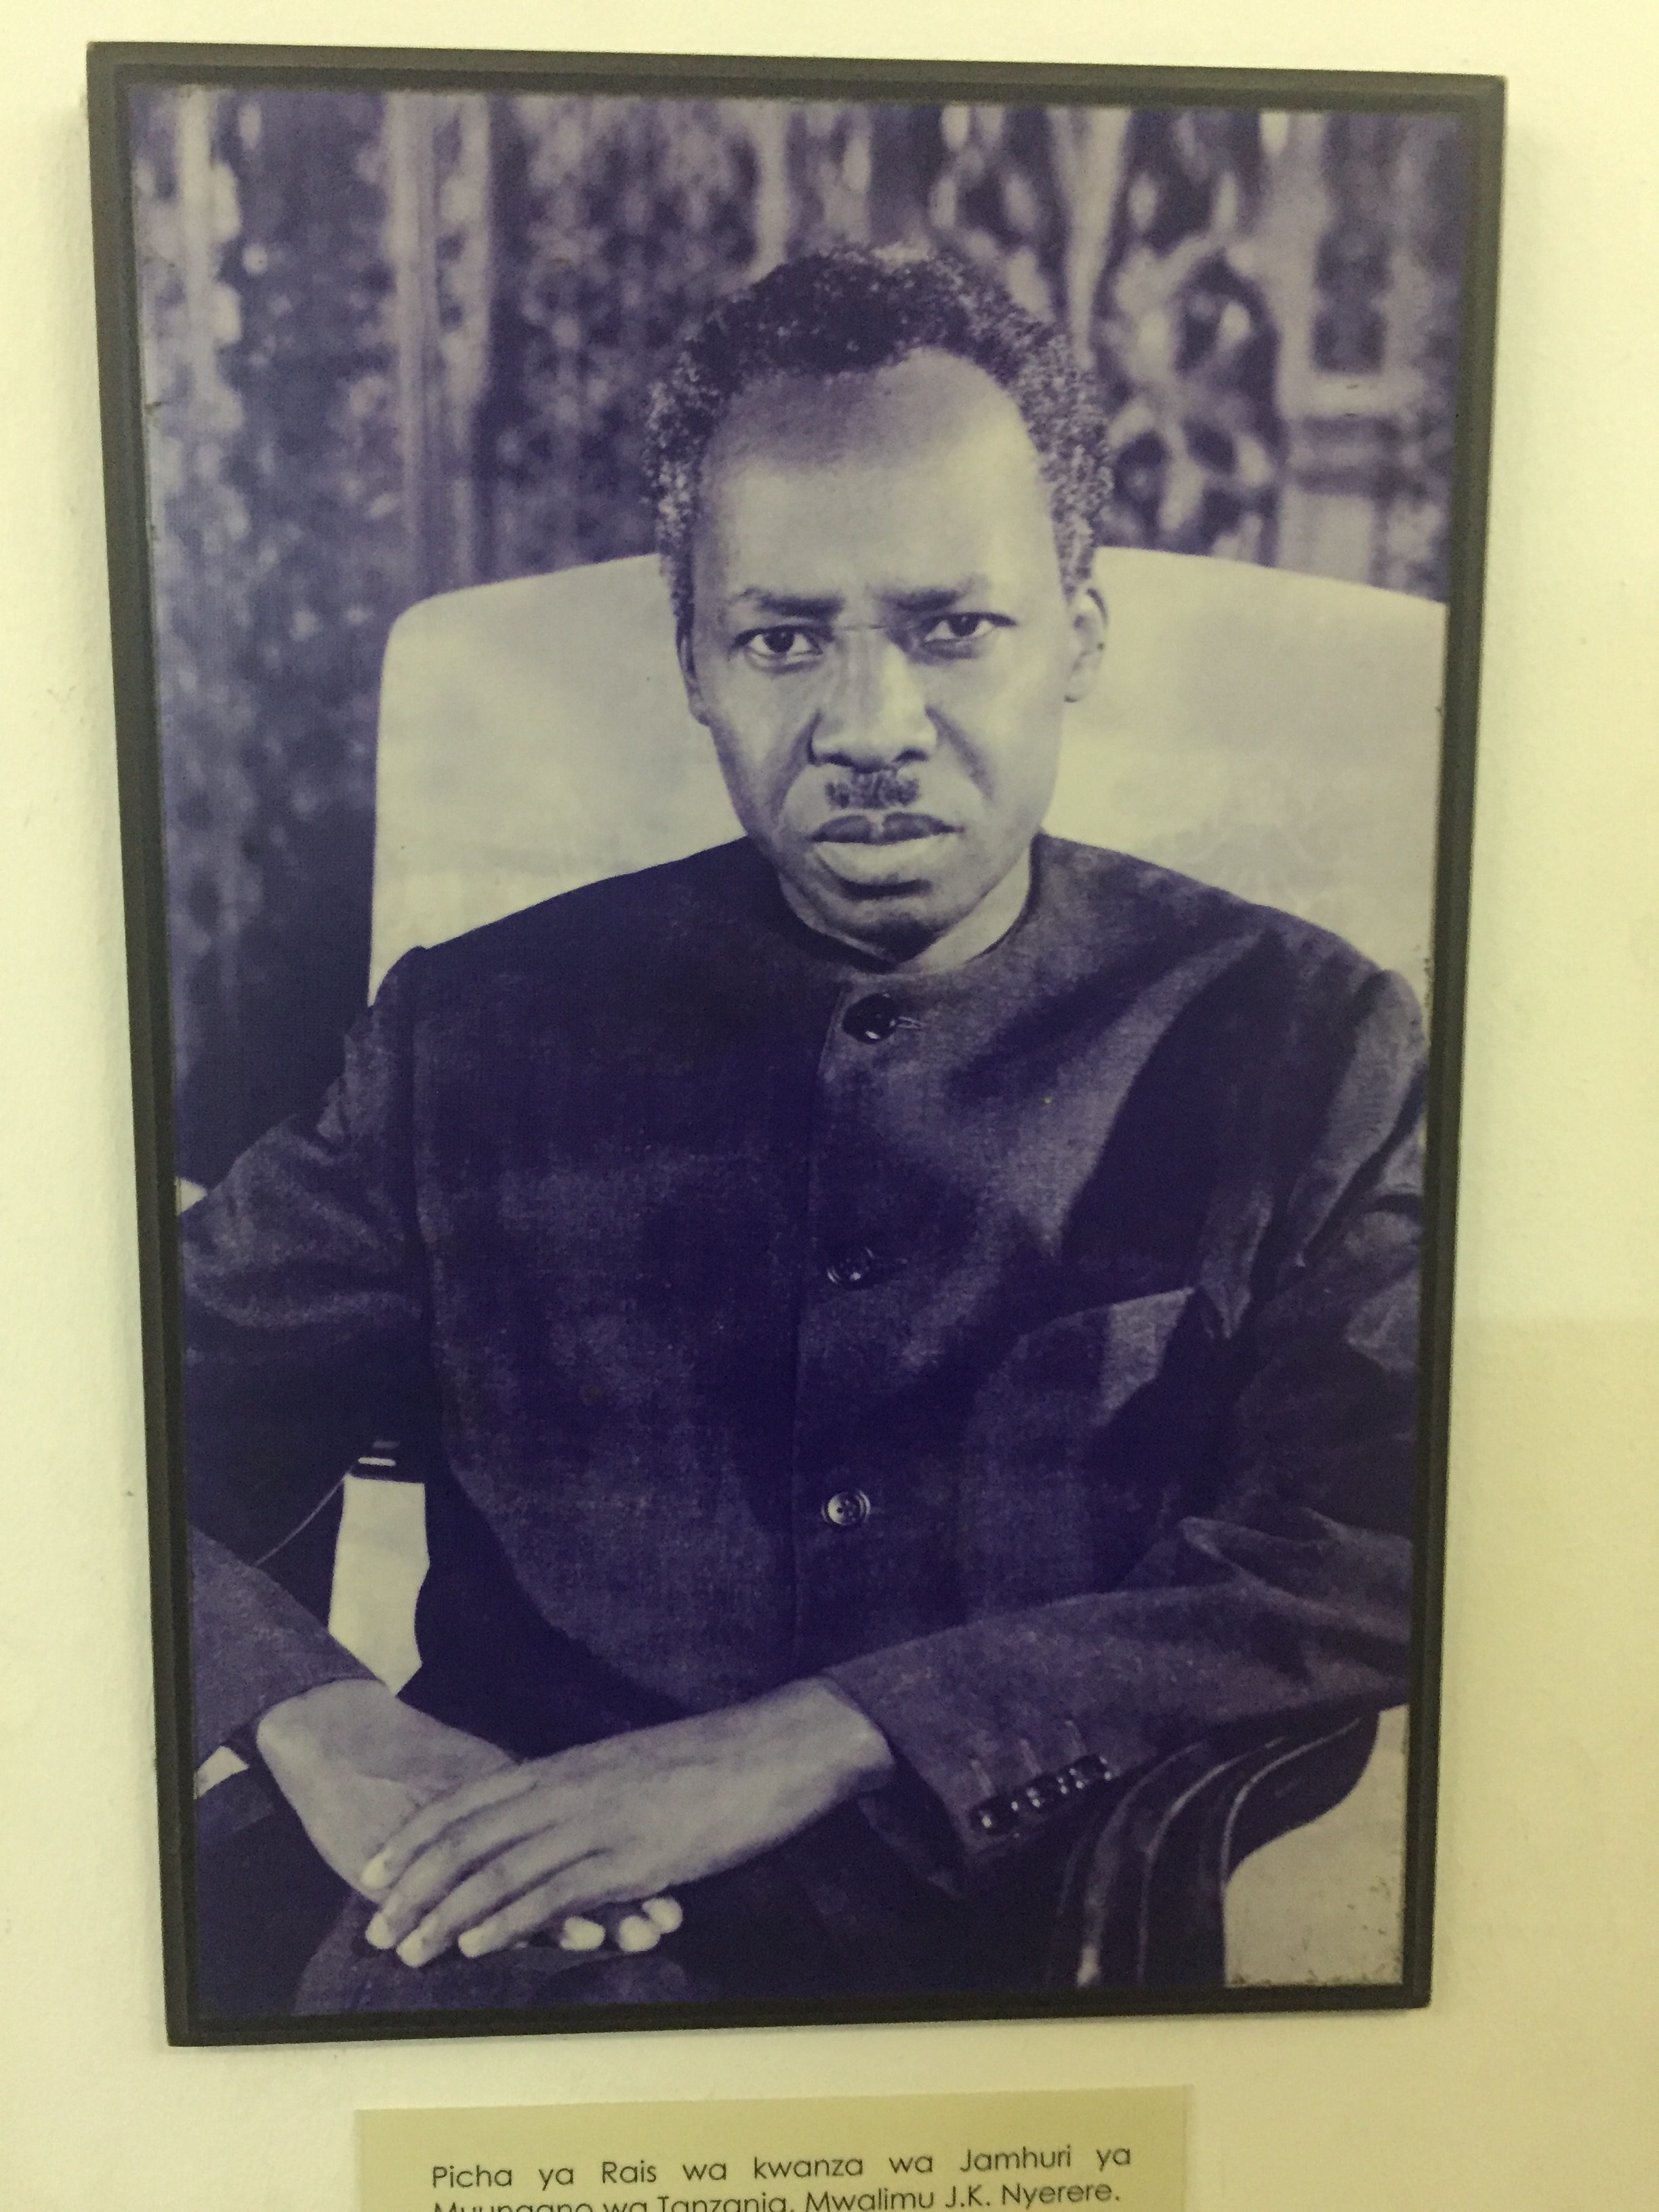 President Nyerere, seen in his official portrait at Dar es Salaam's National Museum.